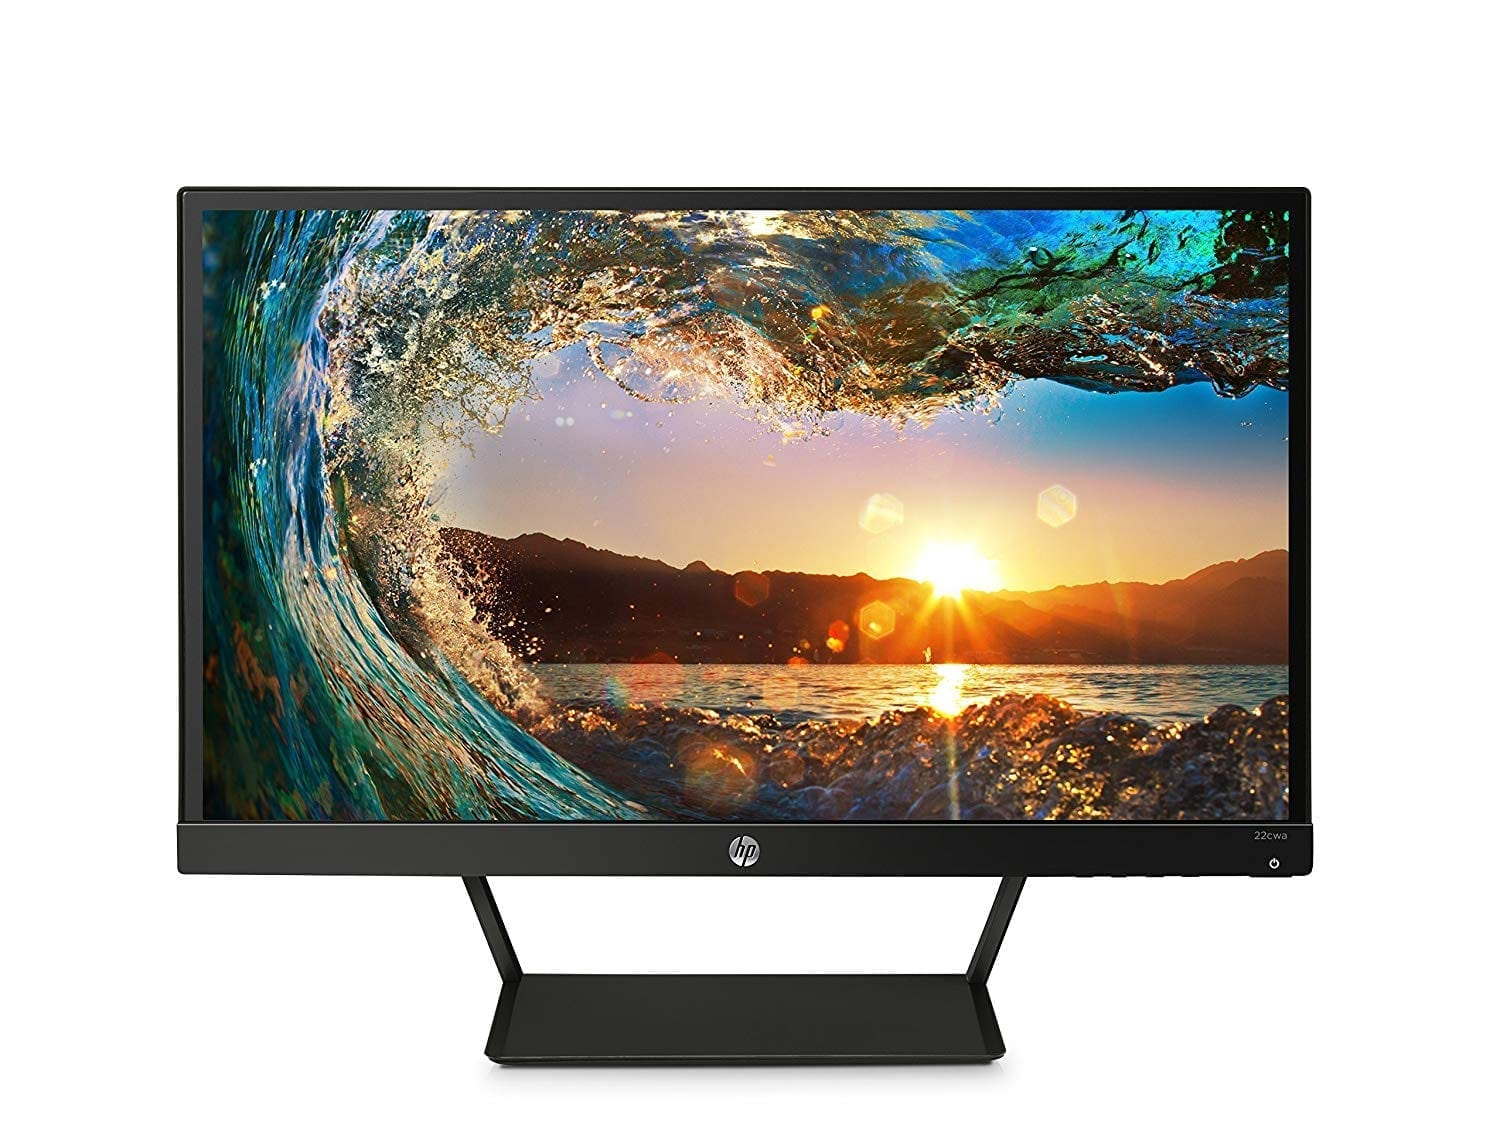 HP Pavilion 21.5 inch IPS LED HDMI VGA monitor